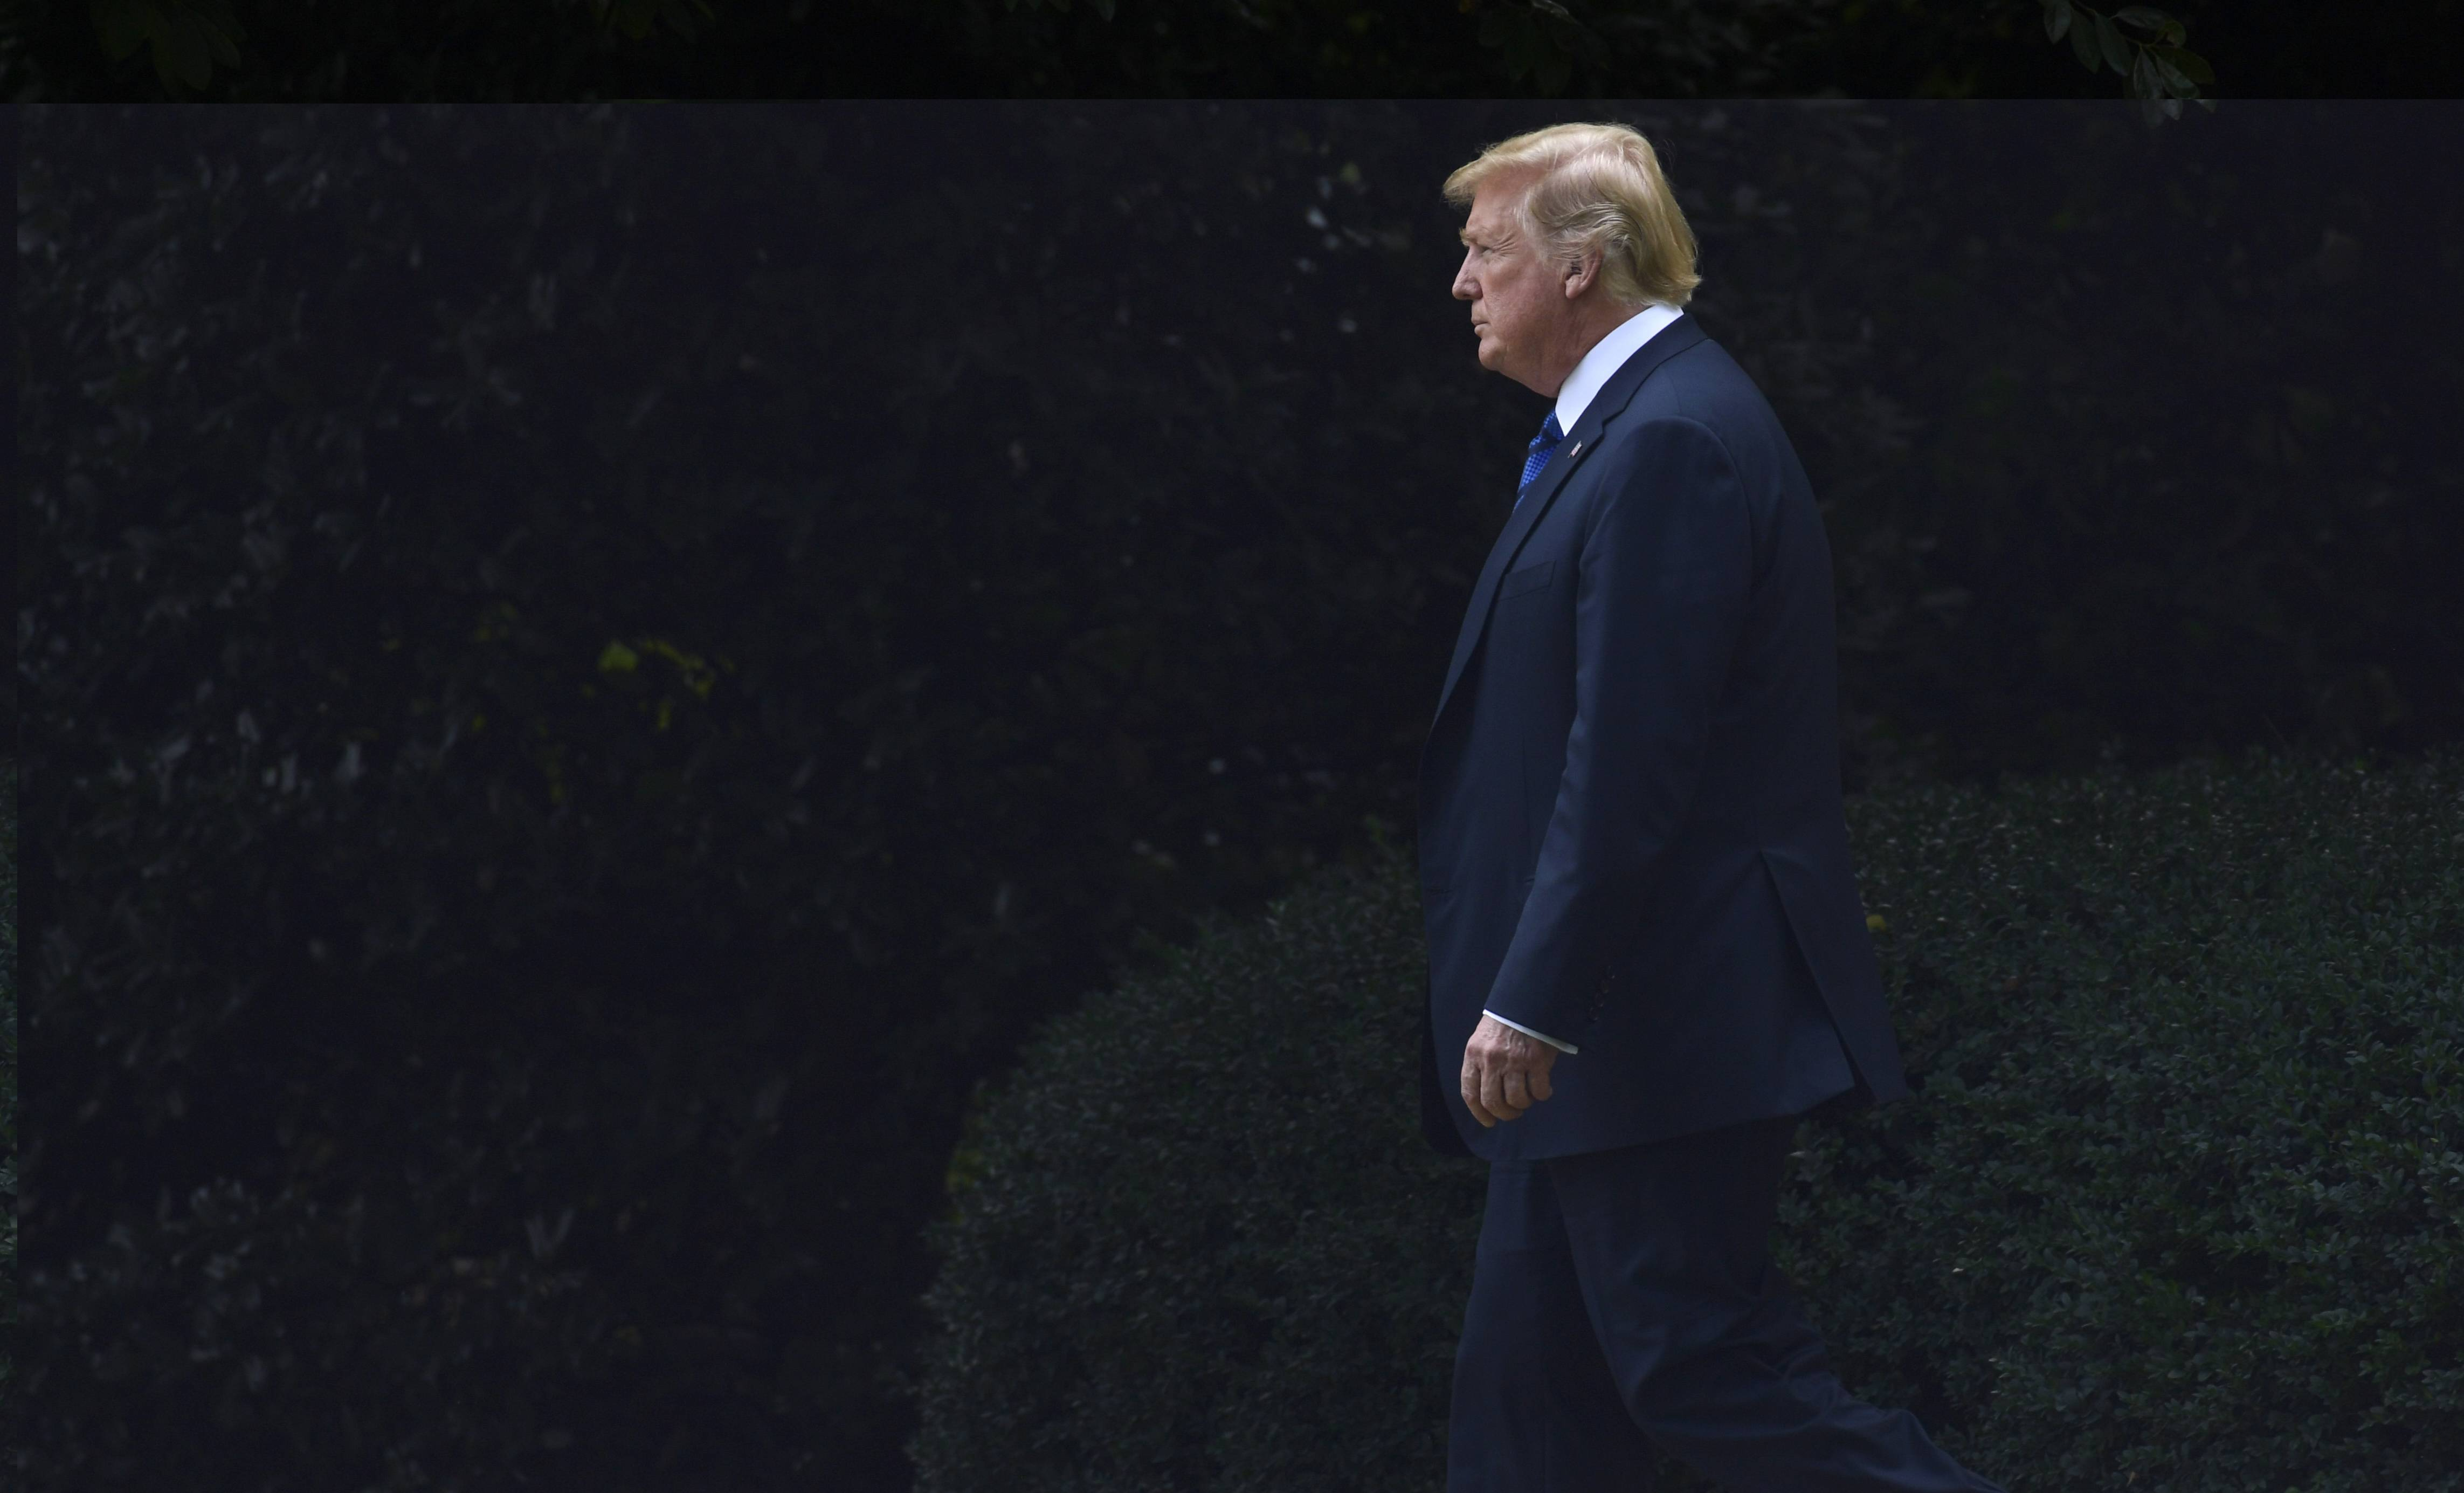 President Donald Trump walks from the Oval Office of the White House to board Marine One for a short trip to Andrews Air Force Base, Maryland, en route to Bedminster, New Jersey, for the weekend.